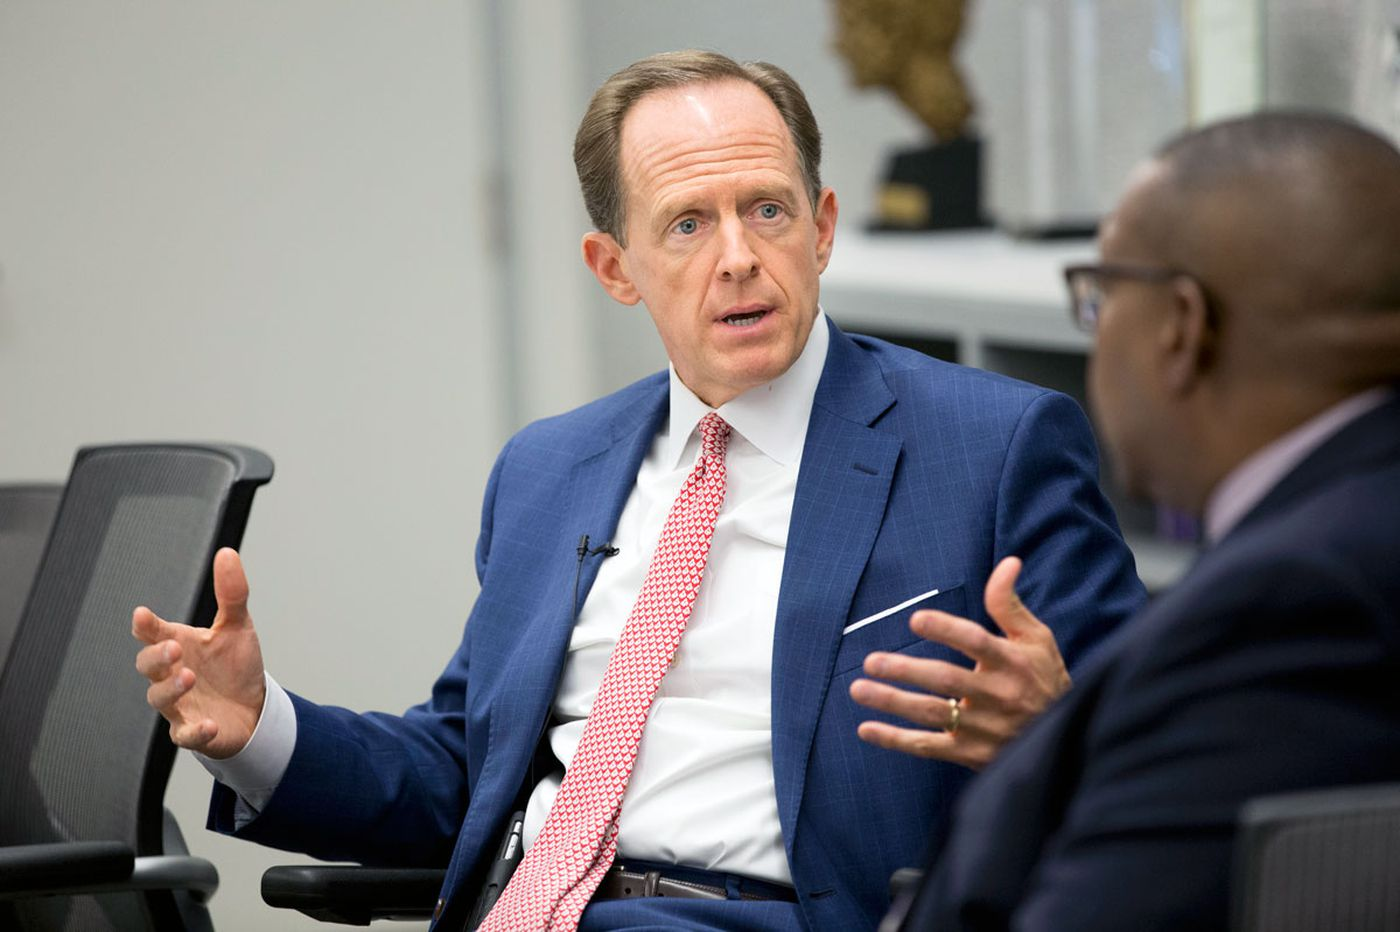 Will Toomey back Trump? He says he may not tell voters